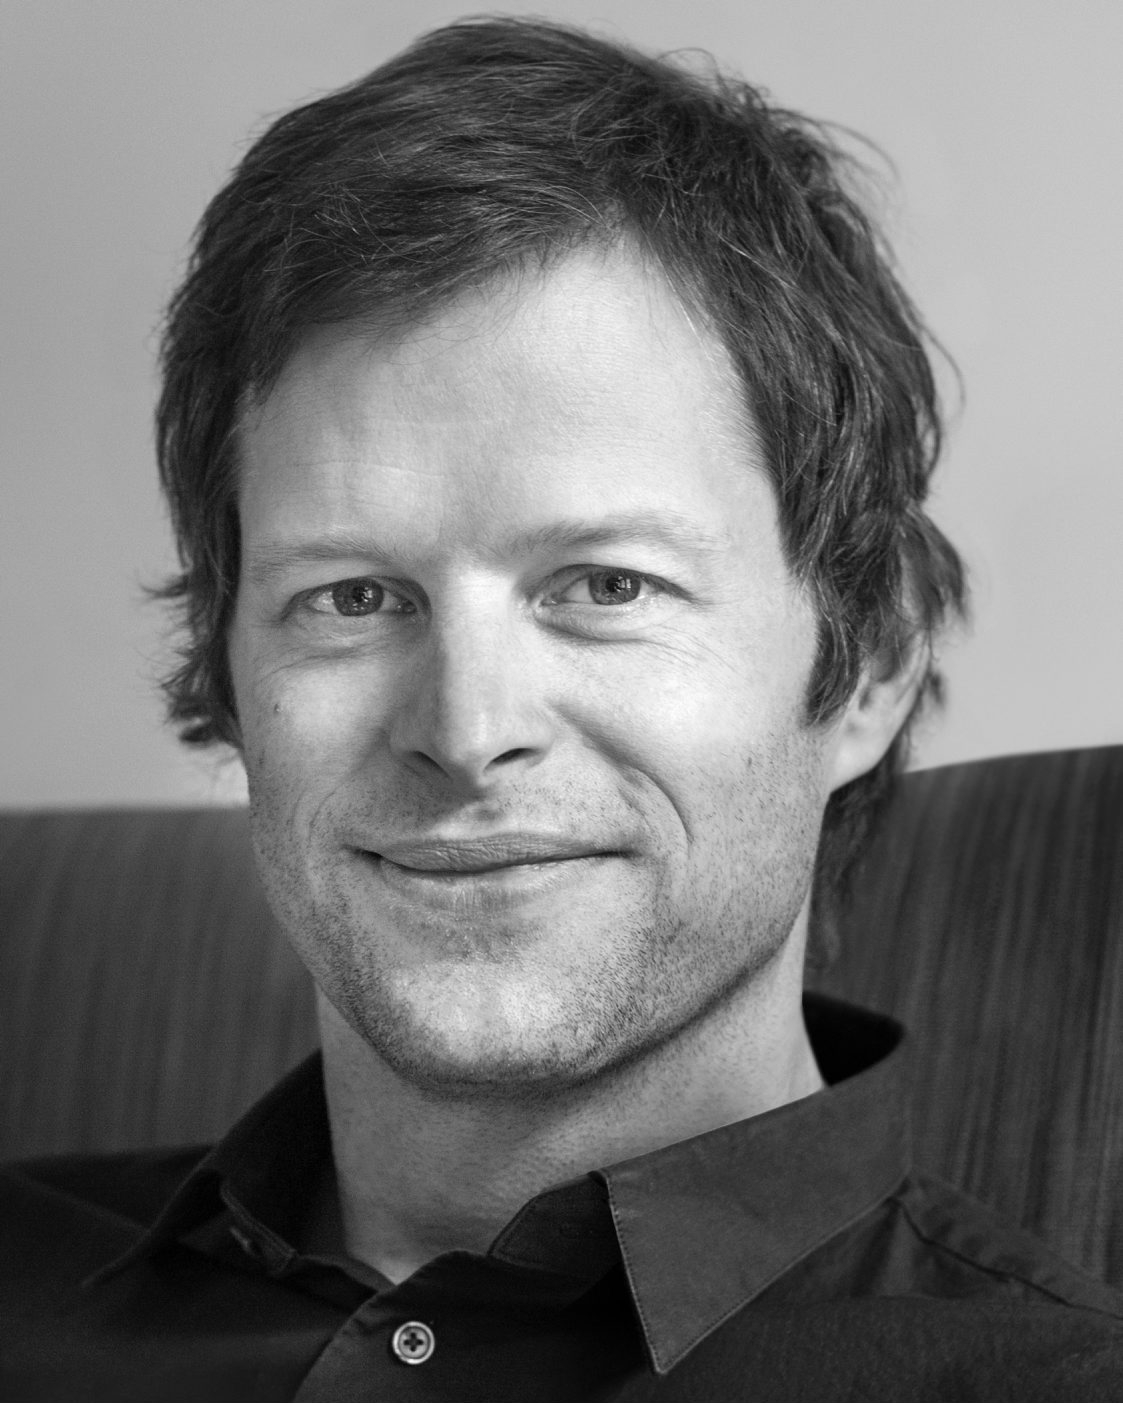 John Wray, who was born in Buffalo, was named one of Granta magazine's Best Young American Novelists in 2007.